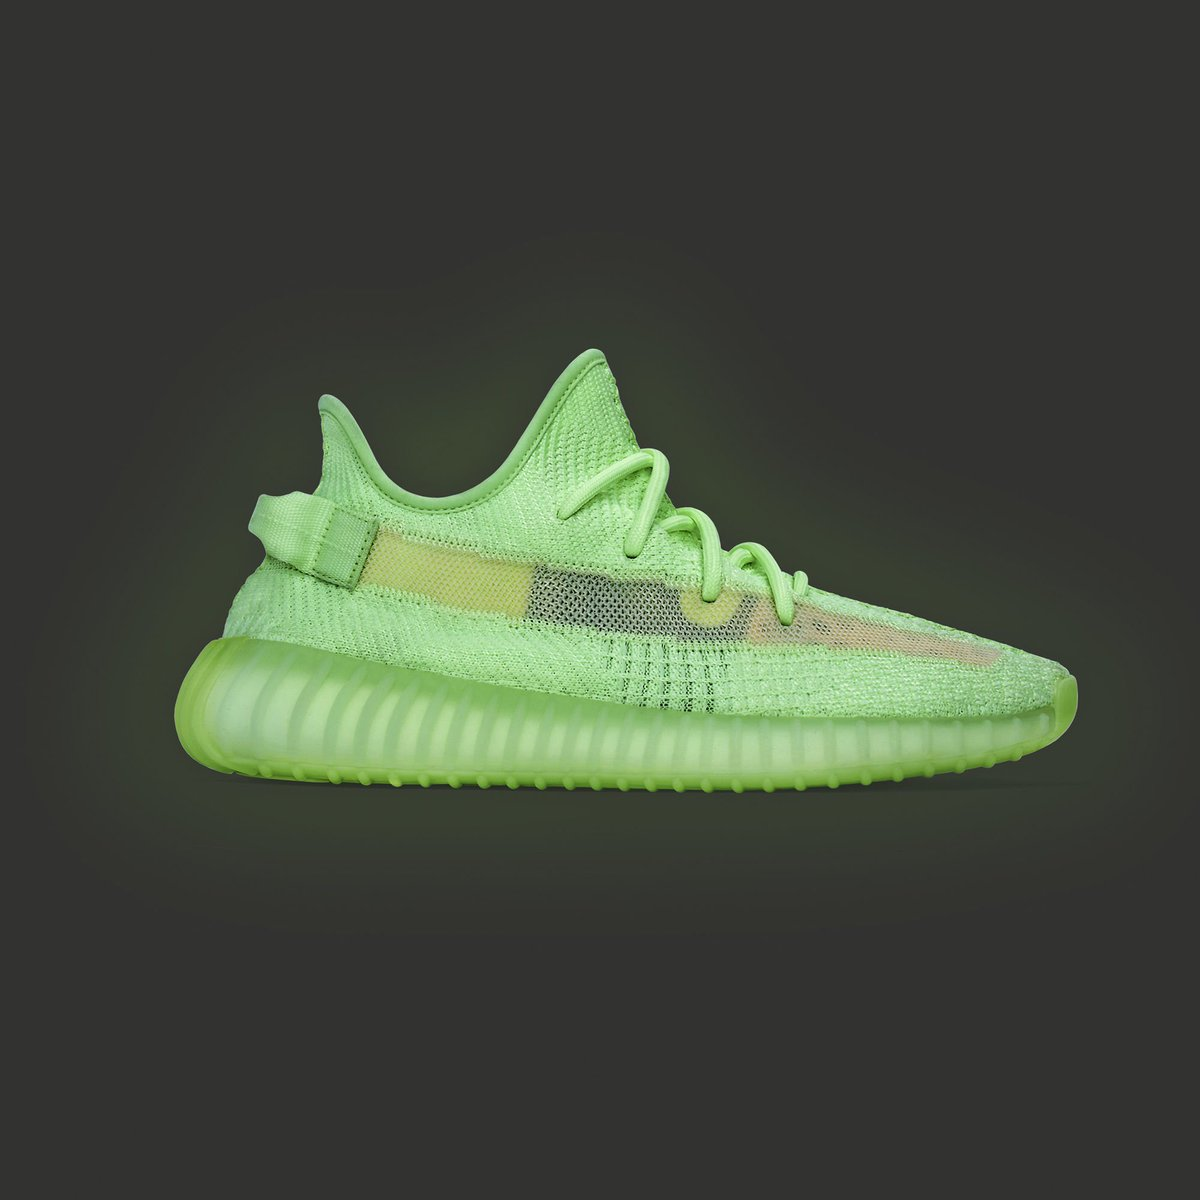 3ee535dd01f85 Official Images of upcoming adidas Yeezy Boost 350 V2  Glow in the Dark   rumored to release this coming May 25thpic.twitter.com JWfO6lzSJ8